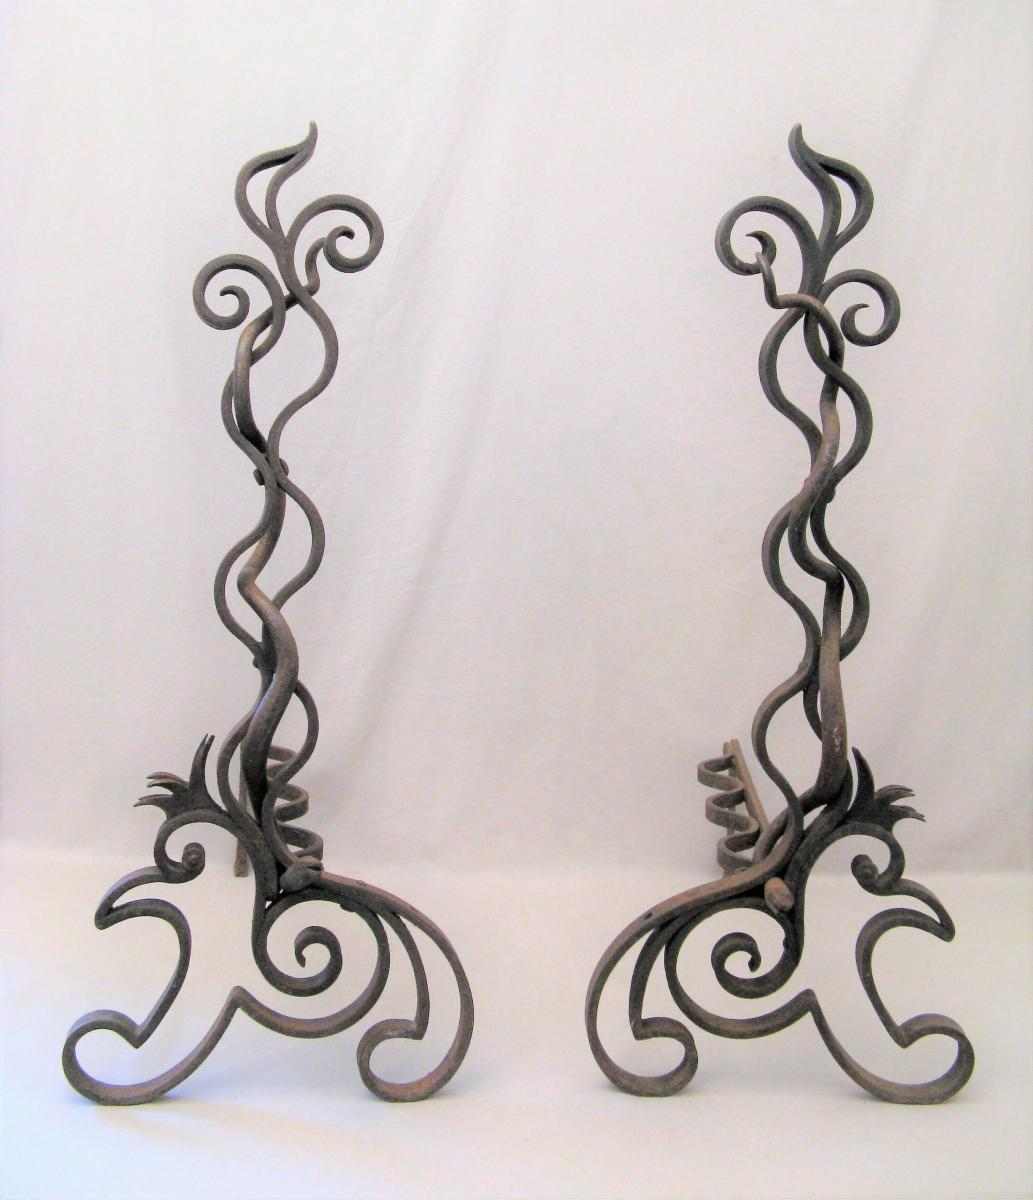 Pair Of Wrought Iron Andirons Art Nouveau Period In